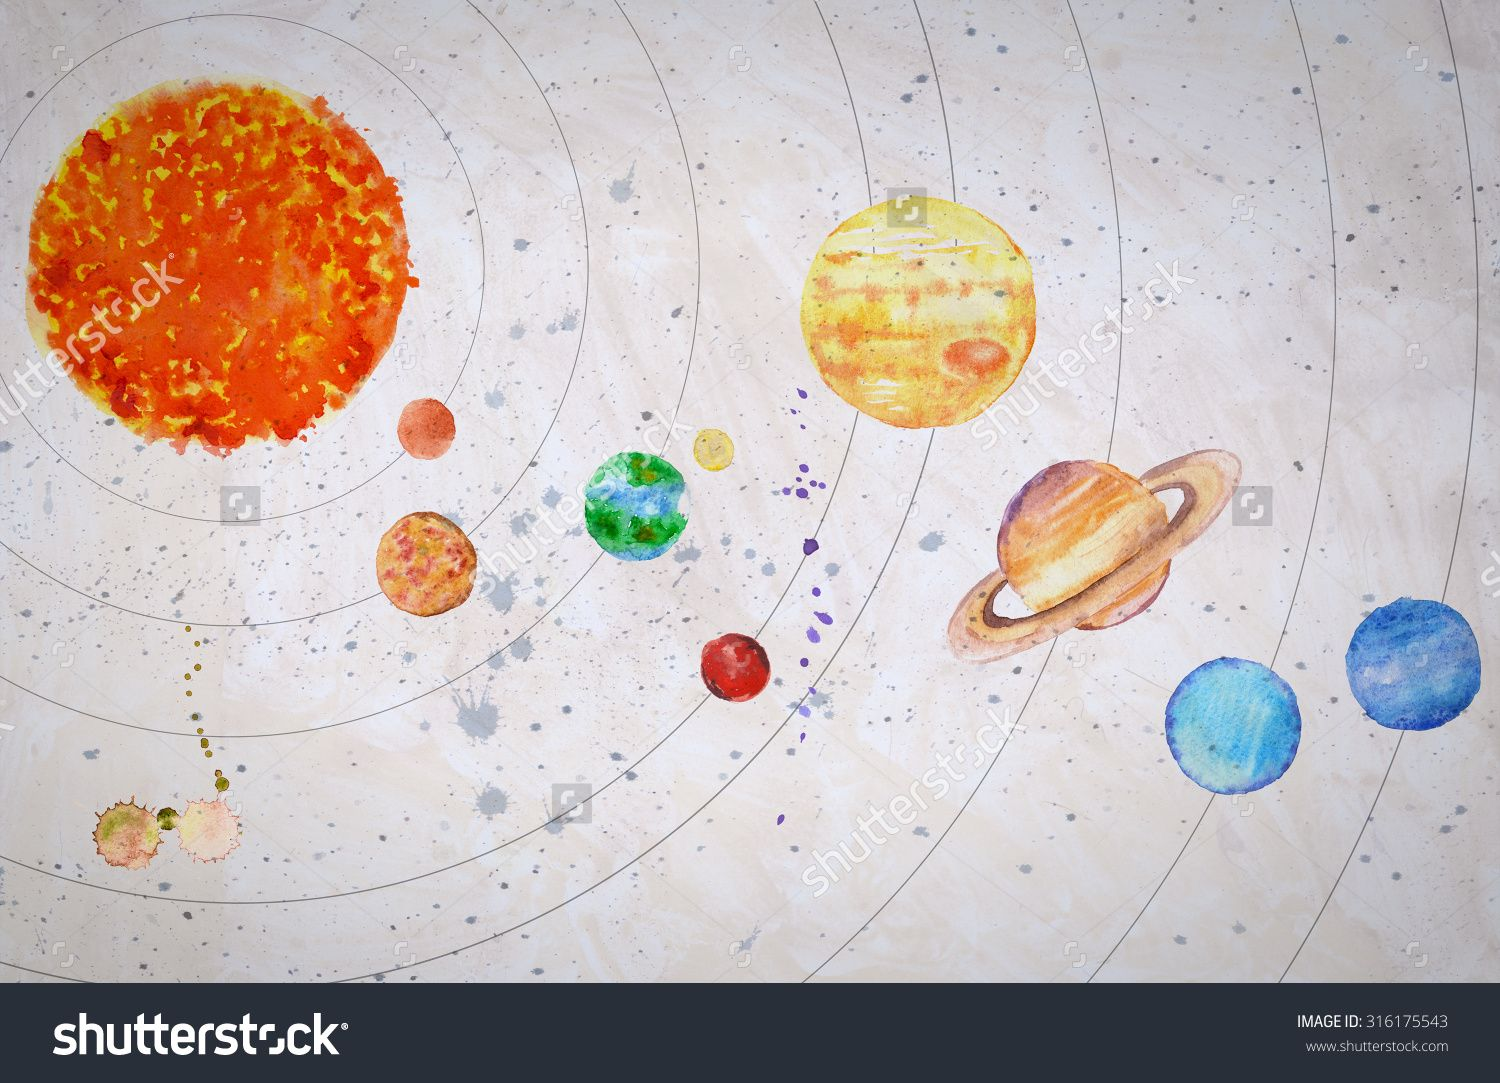 1500x1083 Stock Photo Watercolor Solar System Sun And Planets Mercury Venus